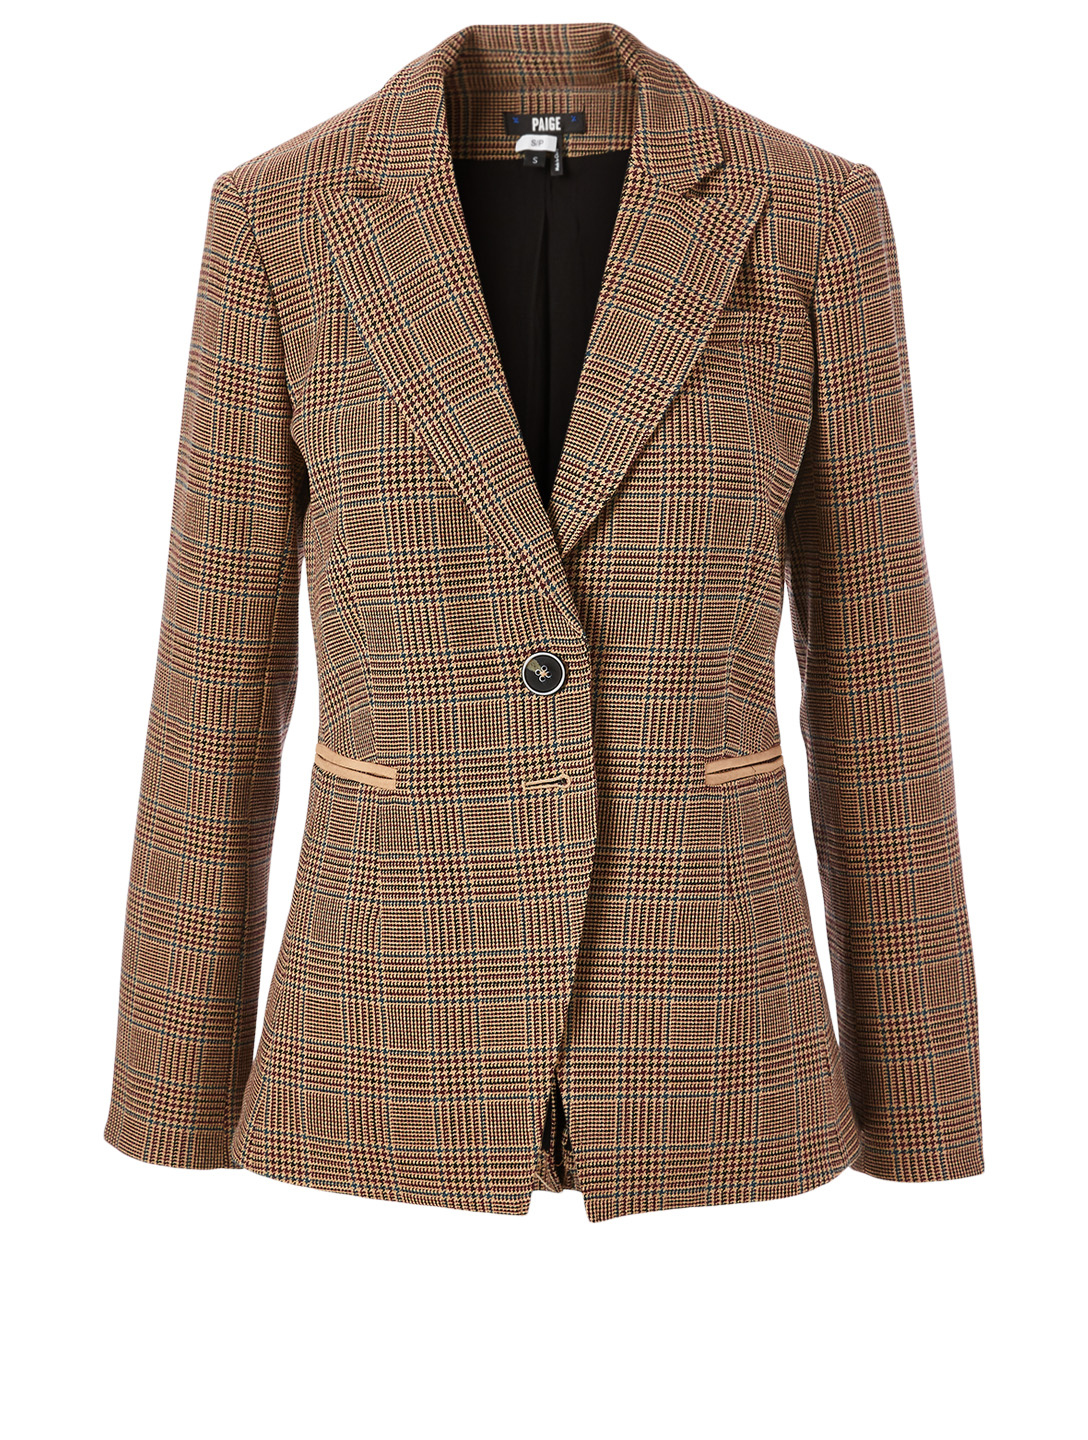 PAIGE Chelsee Blazer In Houndstooth Plaid Print Women's Beige